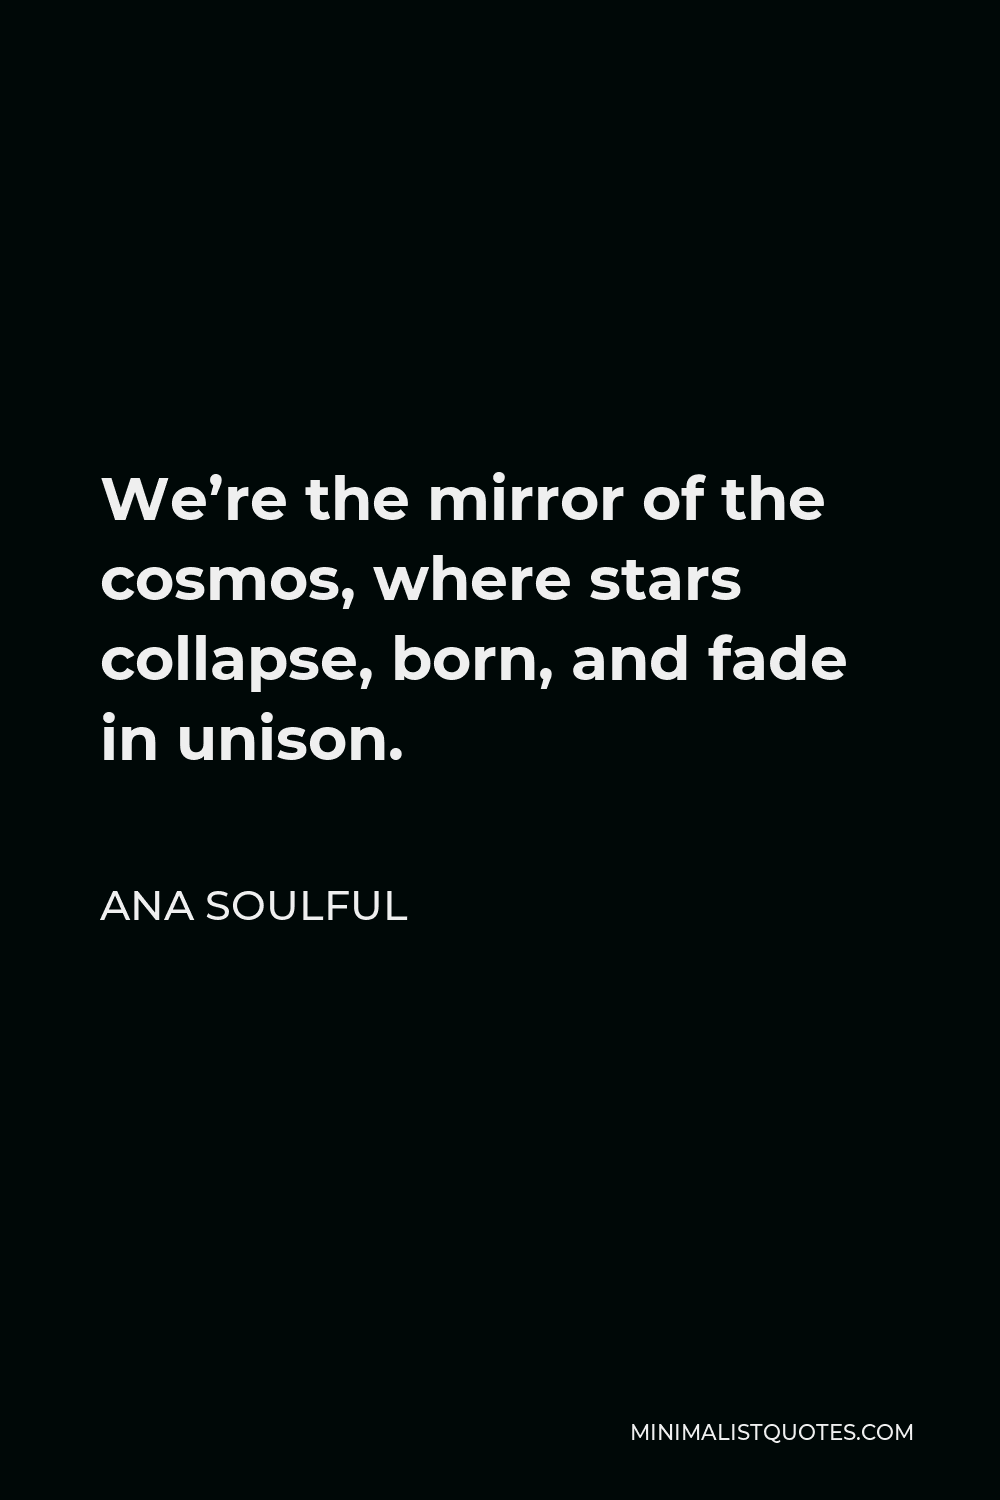 Ana Soulful Quote - We're the mirror of the cosmos, where stars collapse, born, and fade in unison.